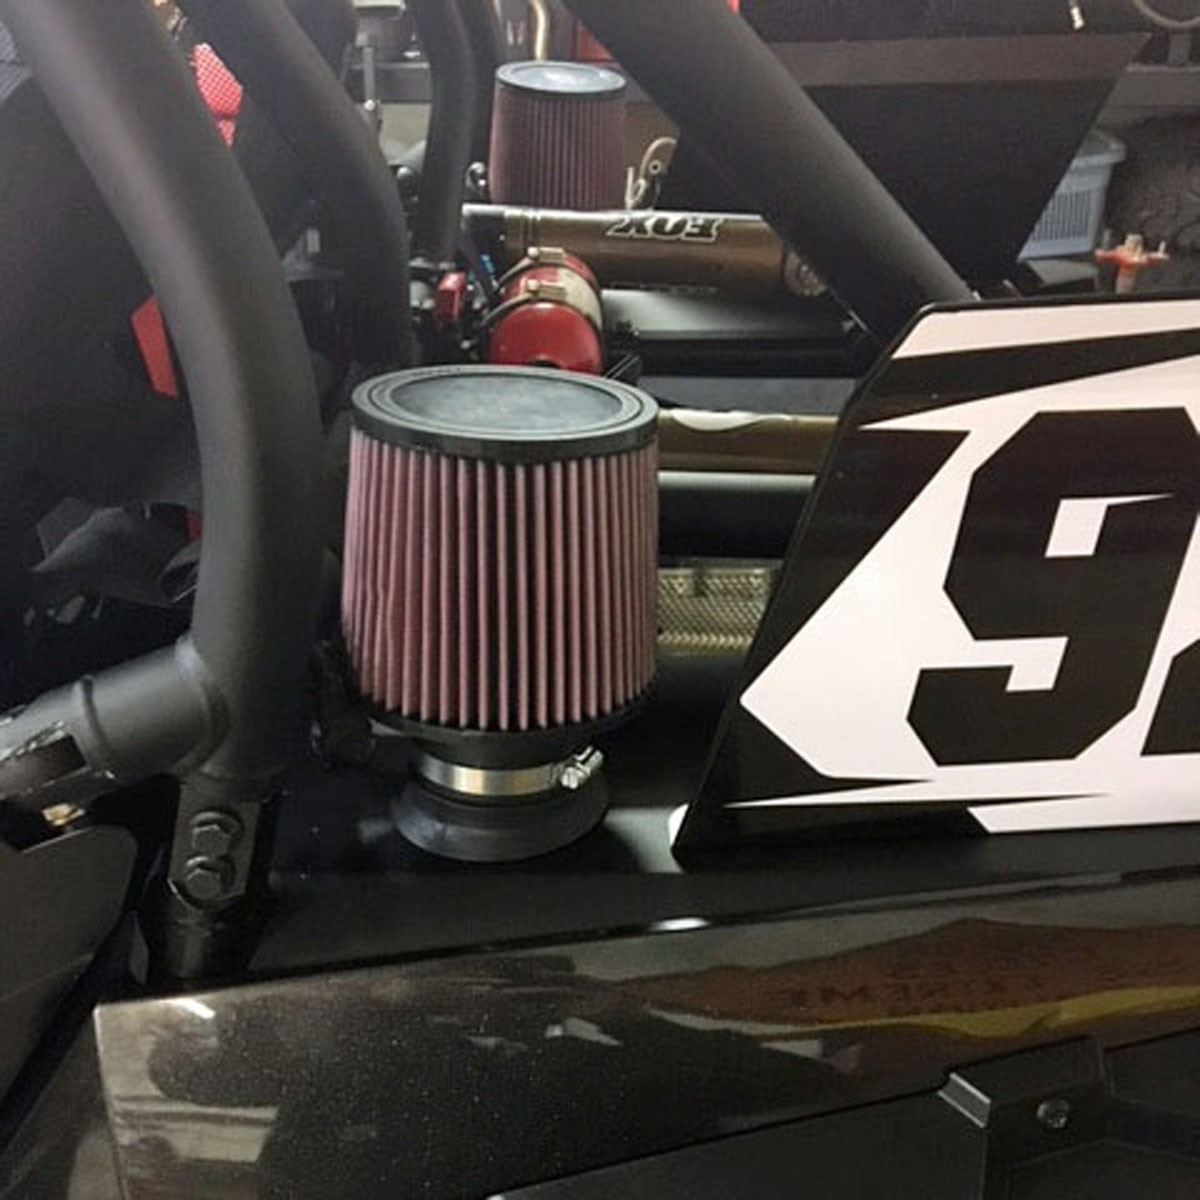 medium resolution of polaris rzr xp 1000 turbo velocity intake system air filter stack our